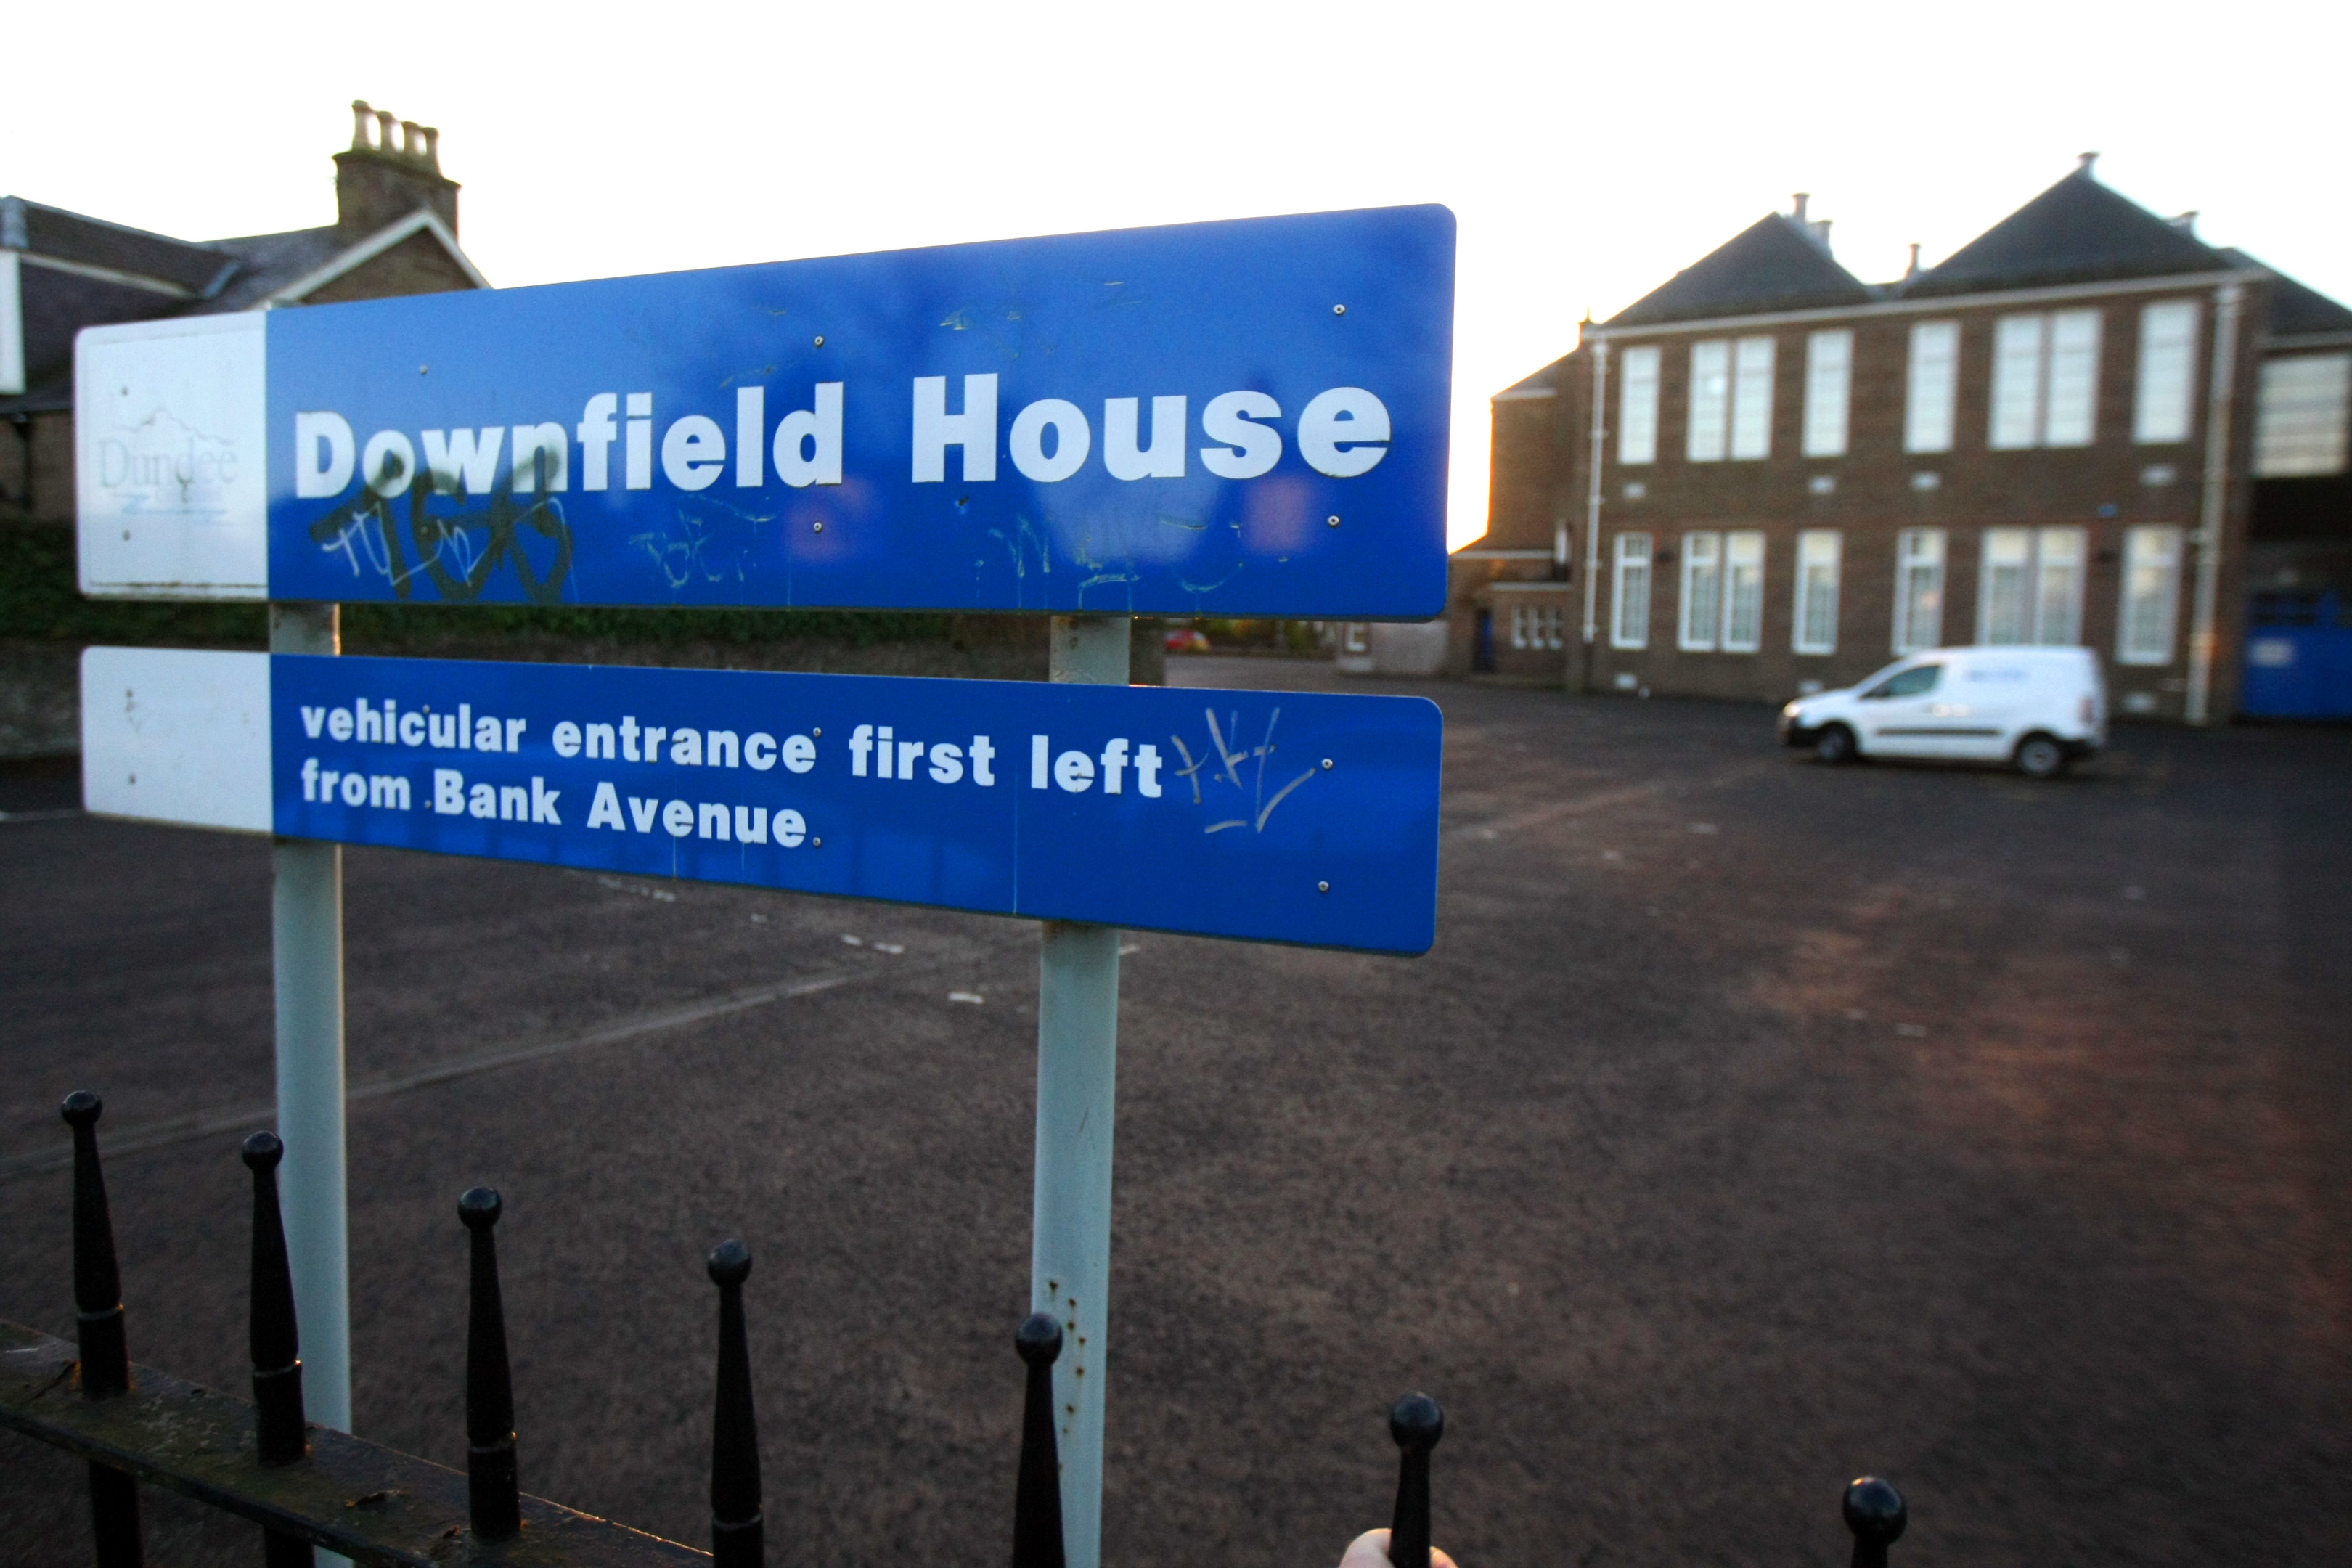 Downfield House.